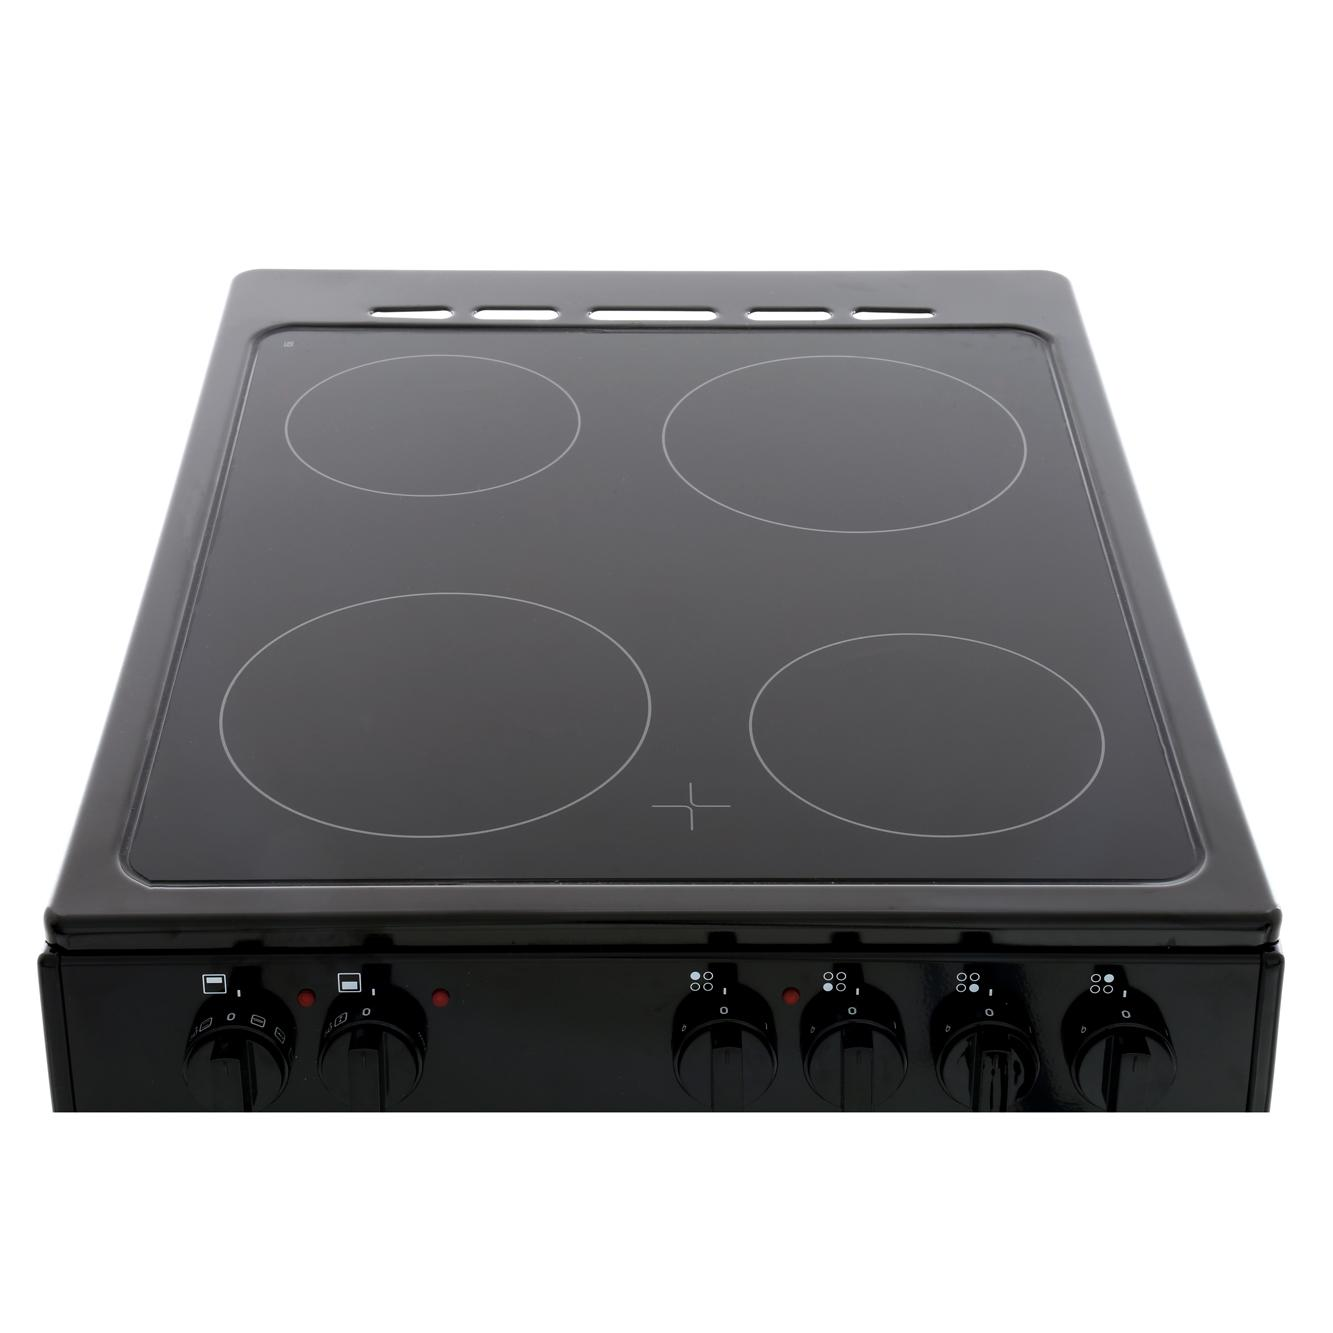 Buy Belling Fs50edofc Black Ceramic Electric Cooker With